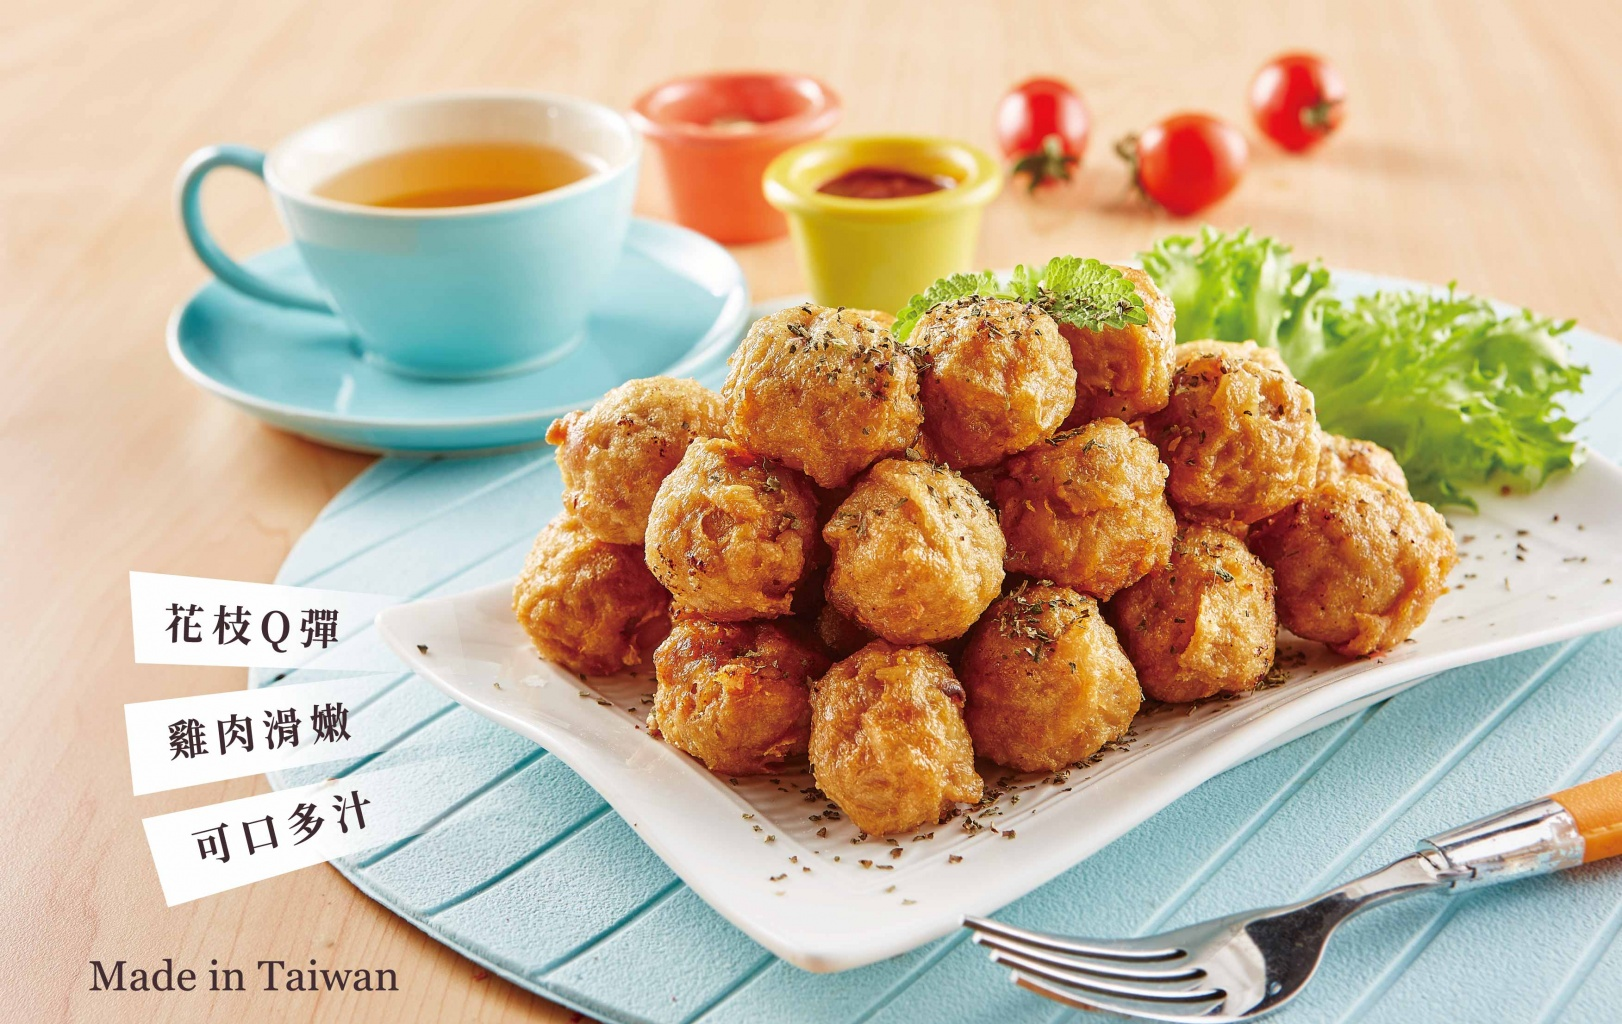 cuttlefish_chicken_balls_2-01-01.jpg (517 KB)